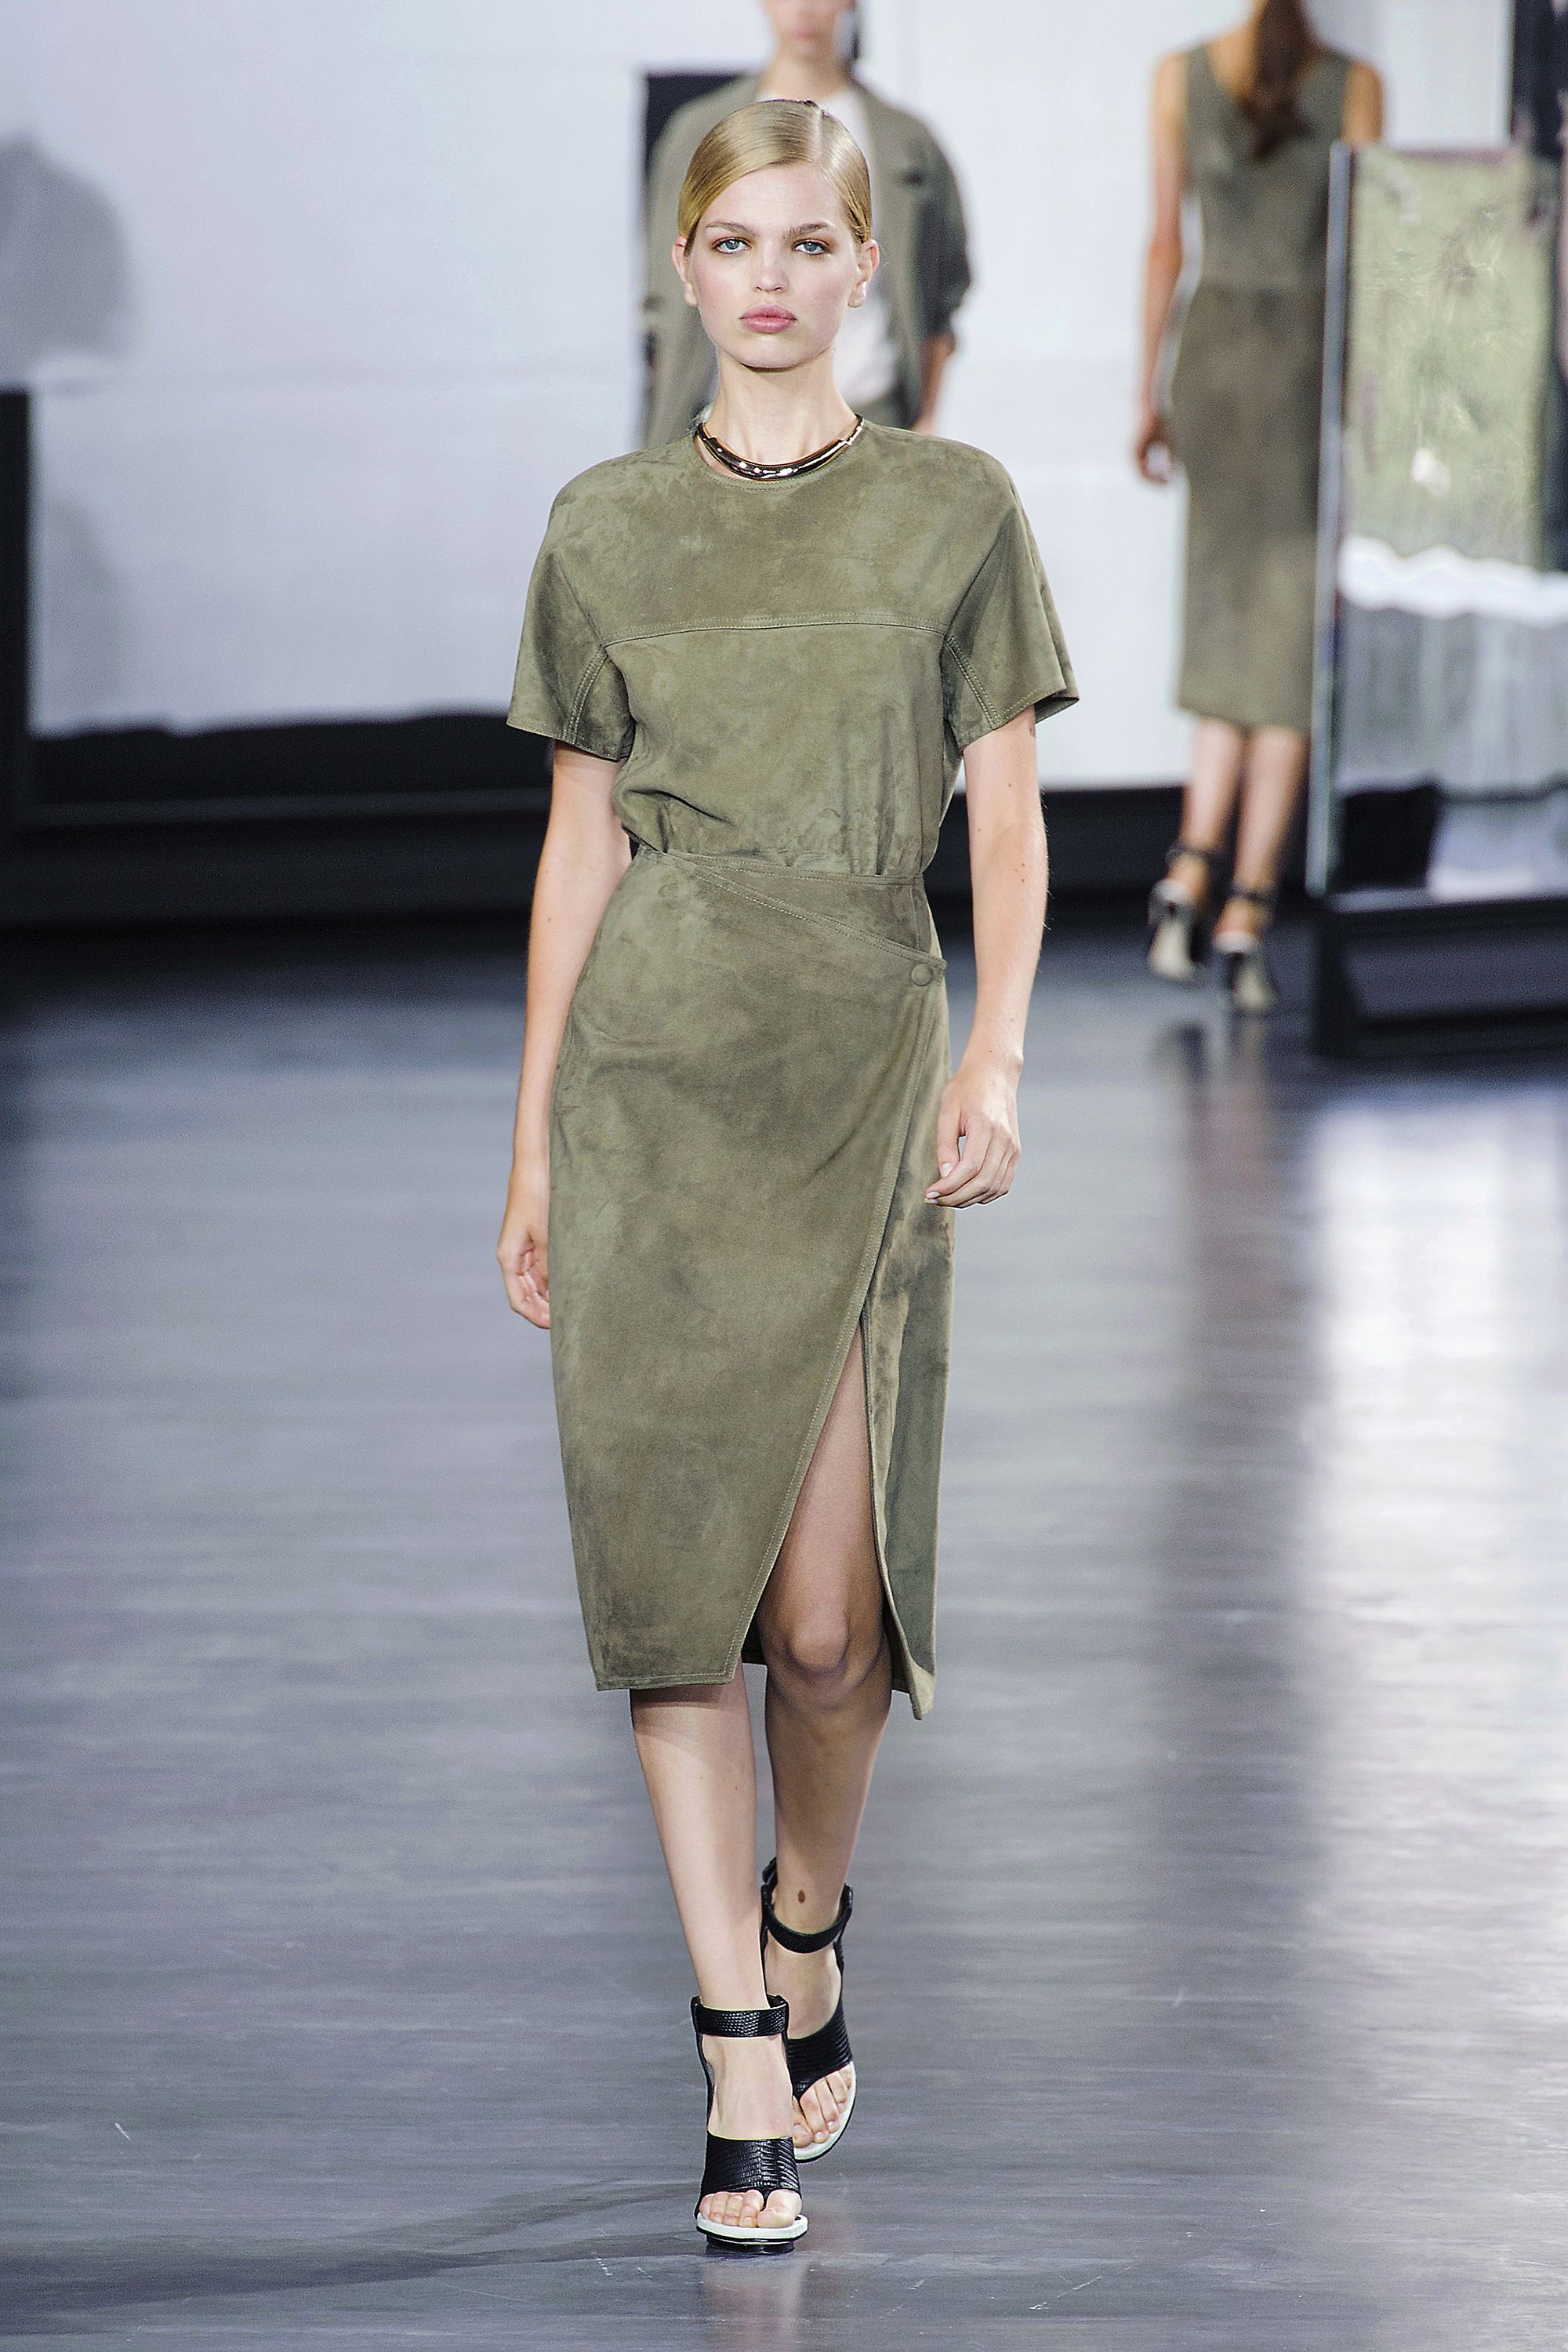 Attention! For spring, Marc Jacobs, Jason Wu (pictured left), Gucci and others are outfitting women with a modern twist on utilitarian style—with dresses in sleek satins and sumptuous suedes in shades of army green.  <em>Stylist Tip: Take this look into evening with a strappy shoe.</em>  <em>  </em>